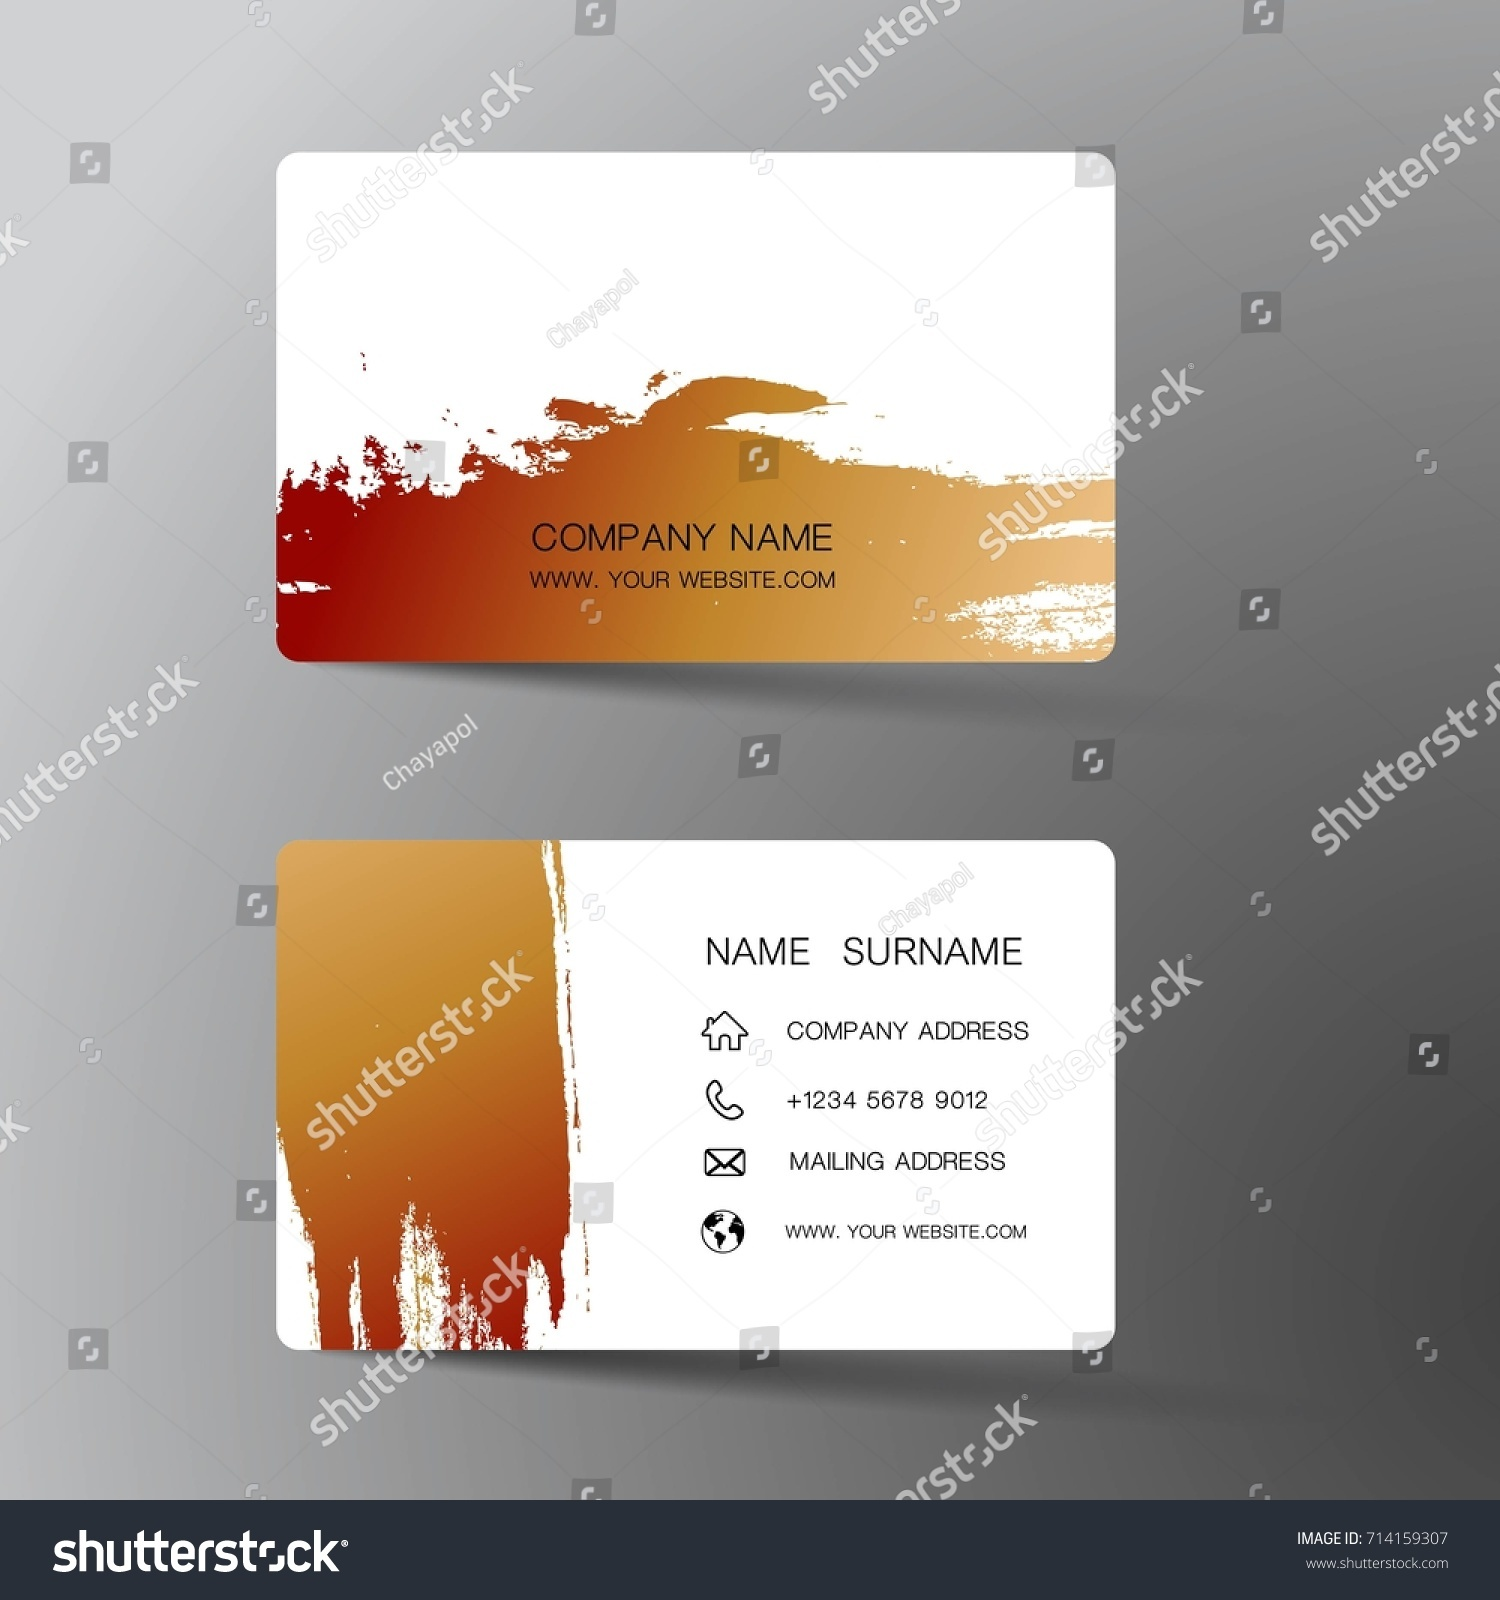 Modern Business Card Template Design Inspiration Stock Vector ...